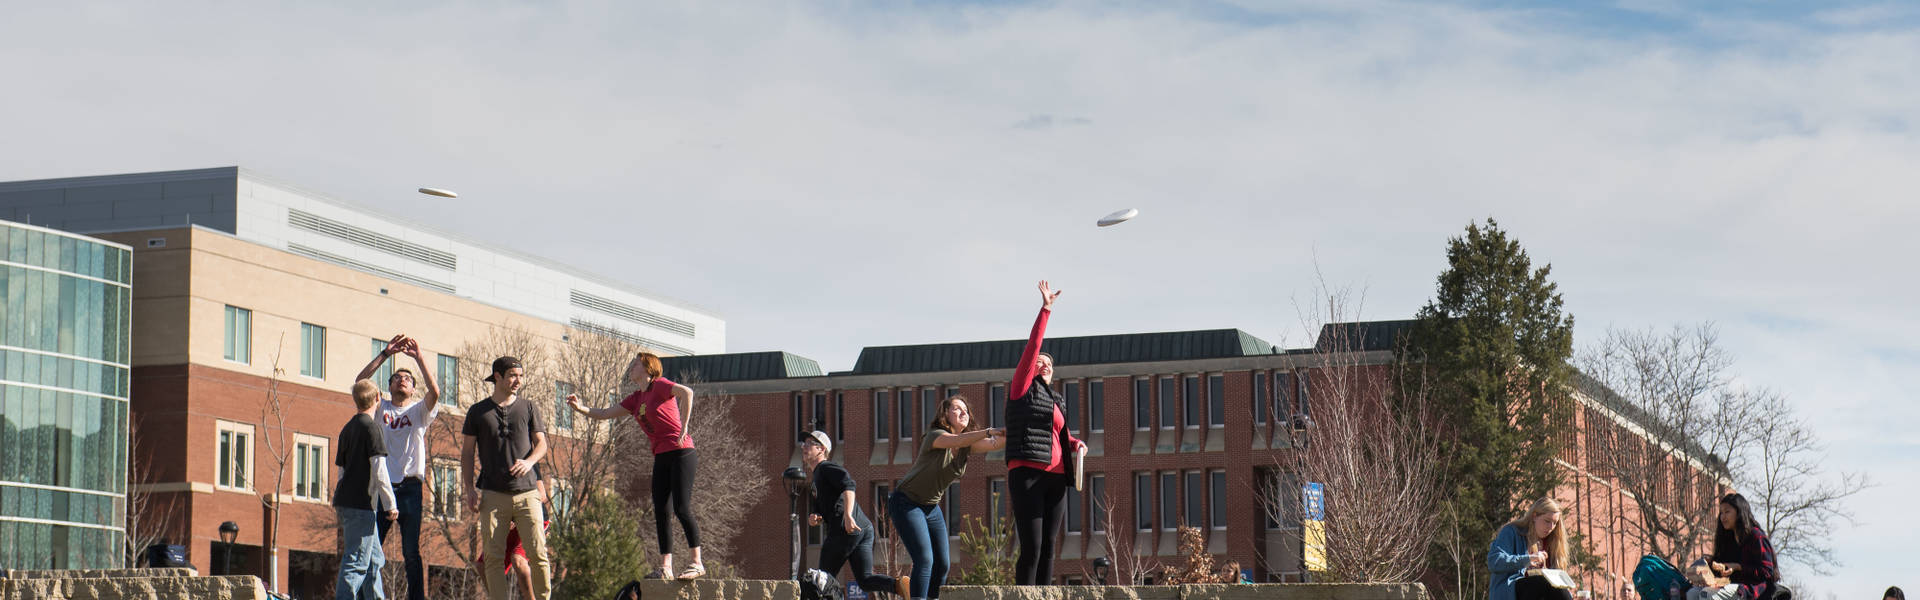 Students playing Frisbee in the campus mall